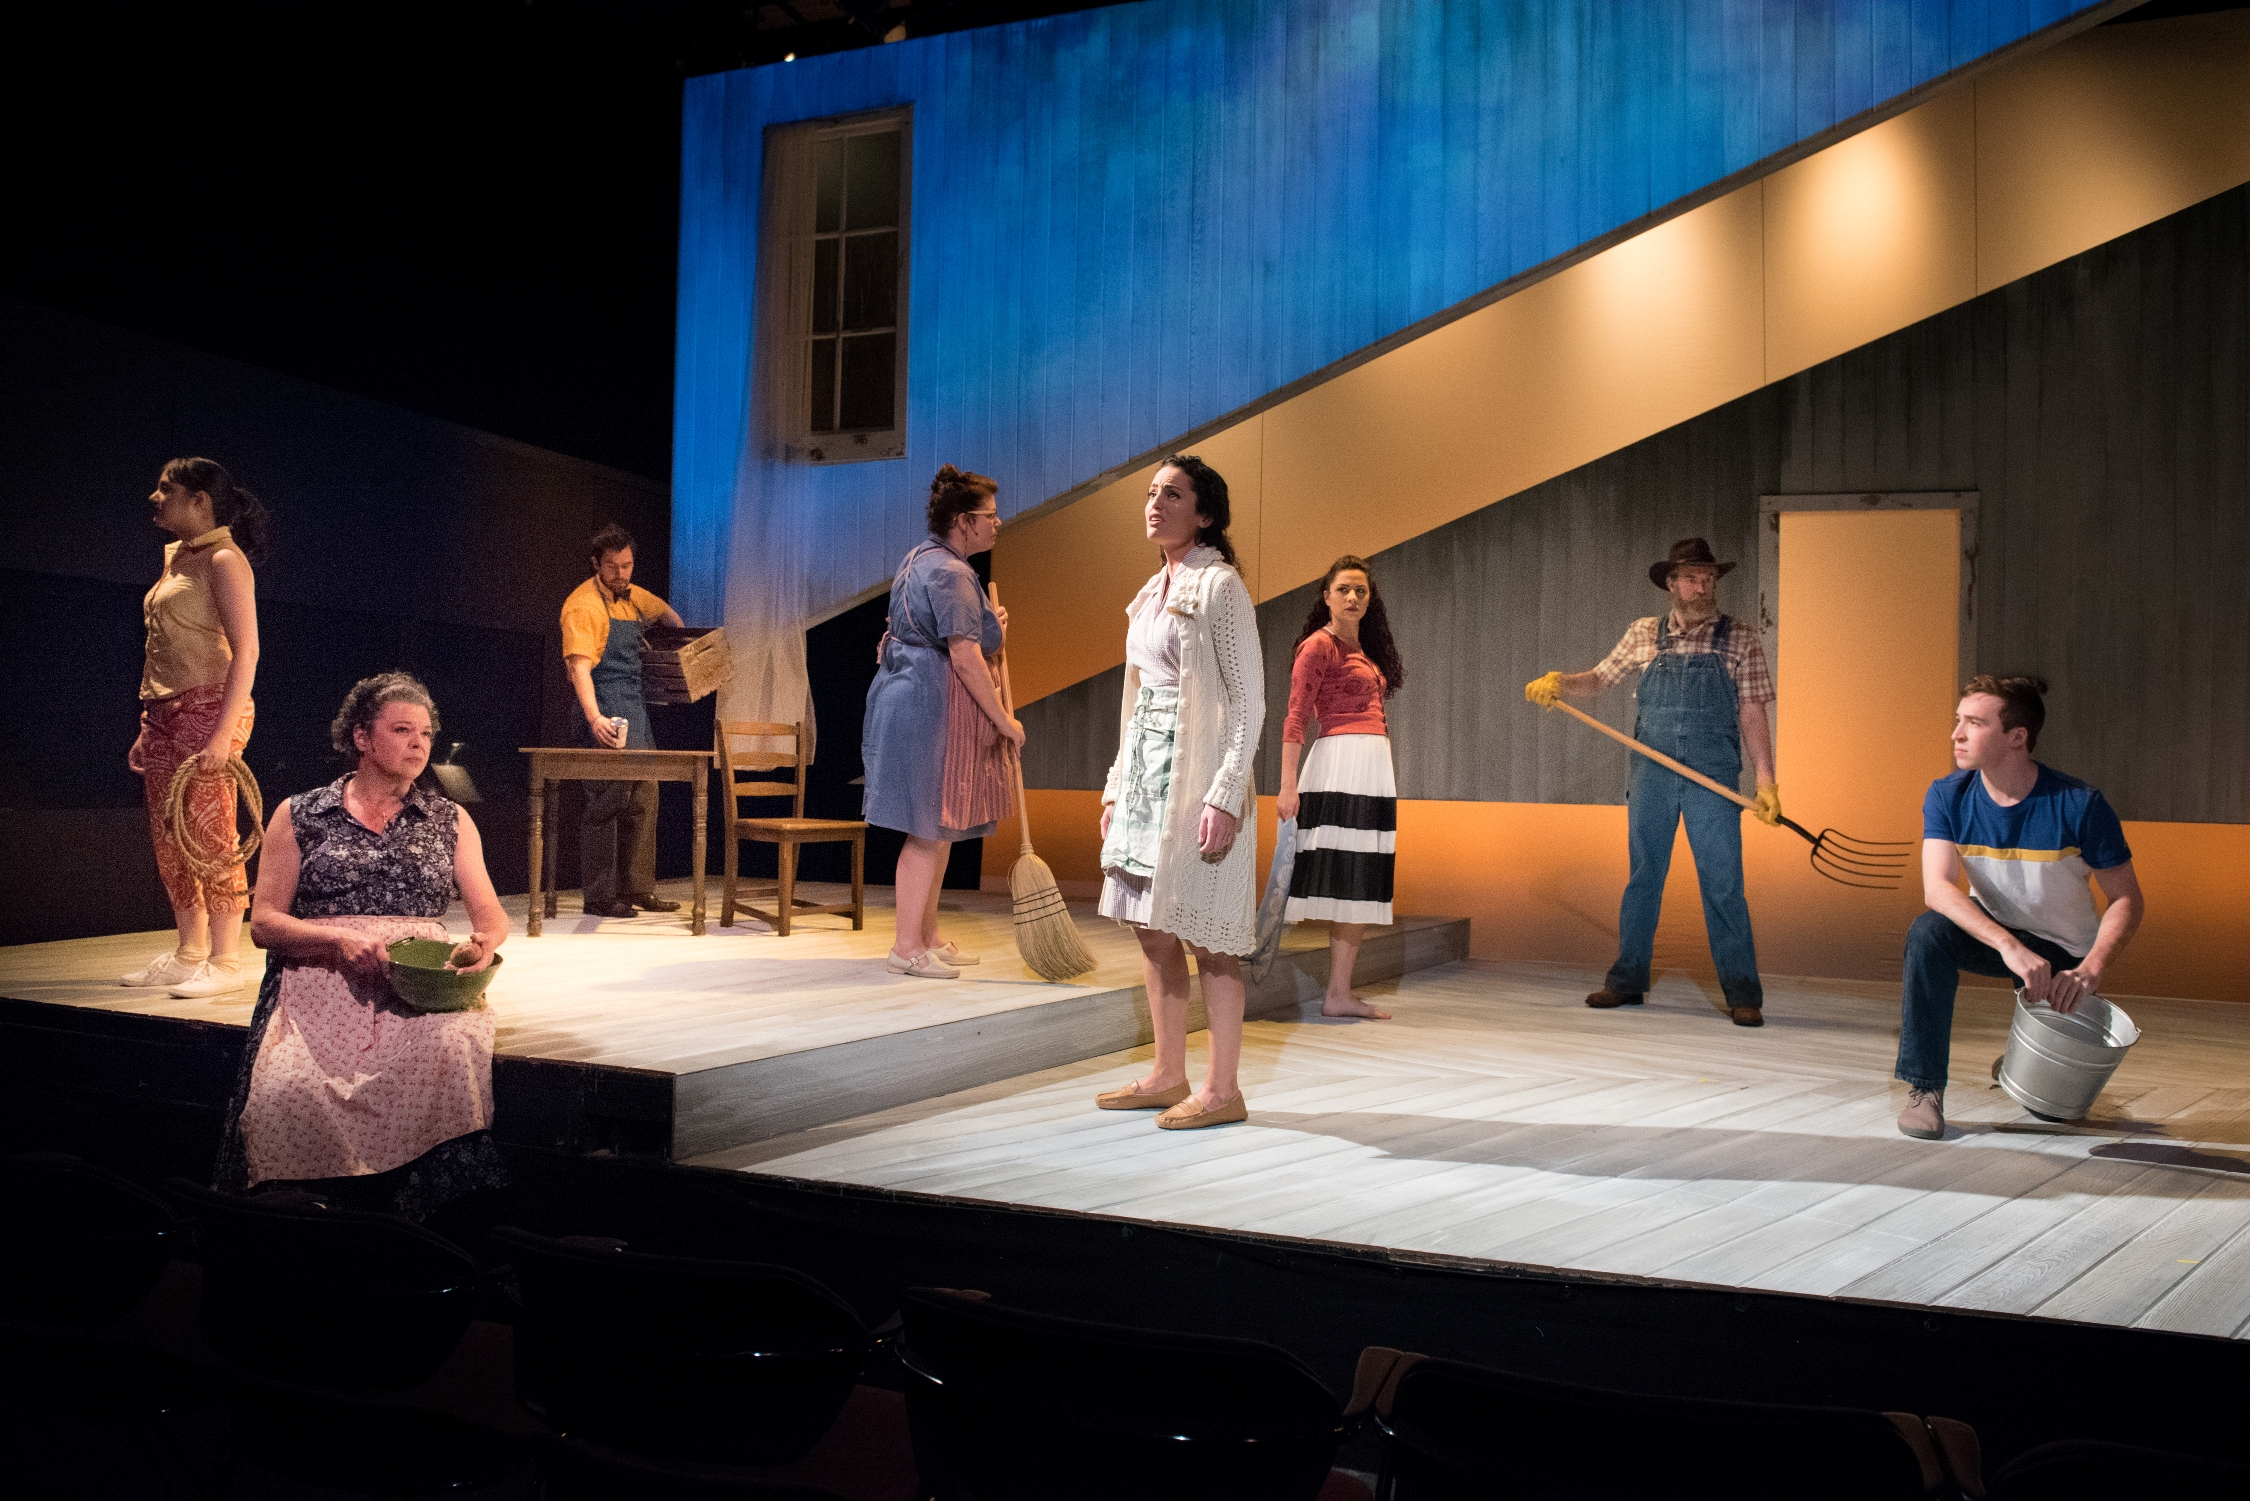 """Francesca ( Jennifer Ellis ) and the ensemble during """"To Build A Home"""" in SpeakEasy Stage Company's  The Bridges of Madison County . Photo by Glenn Perry."""